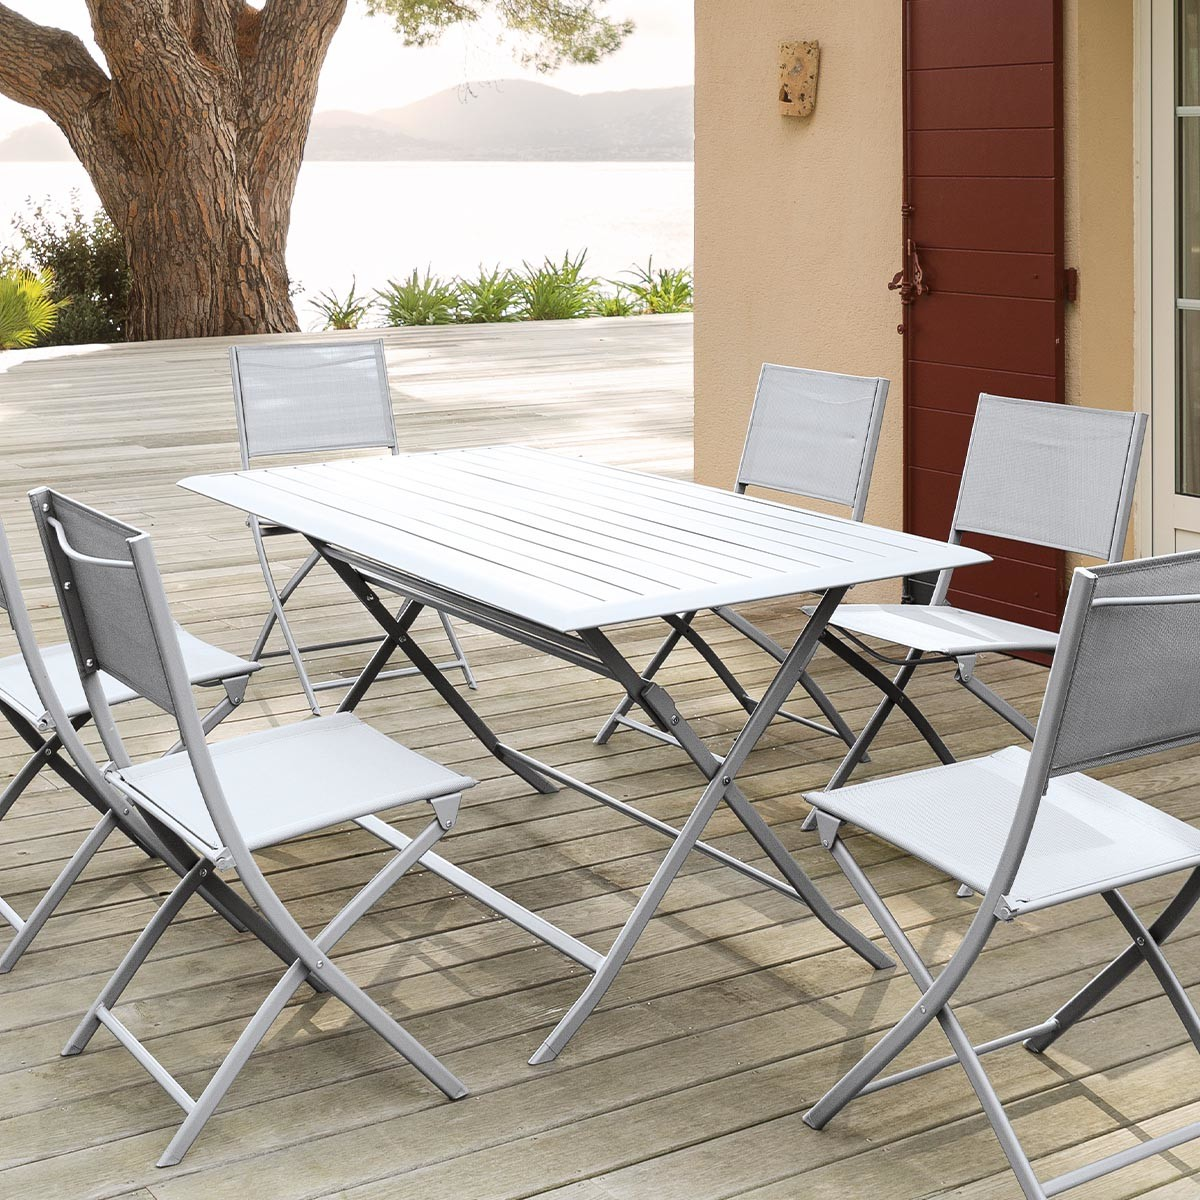 Table Pliante Exterieur Table De Jardin Pliante Rectangulaire Azua Silver Mat Hesperide